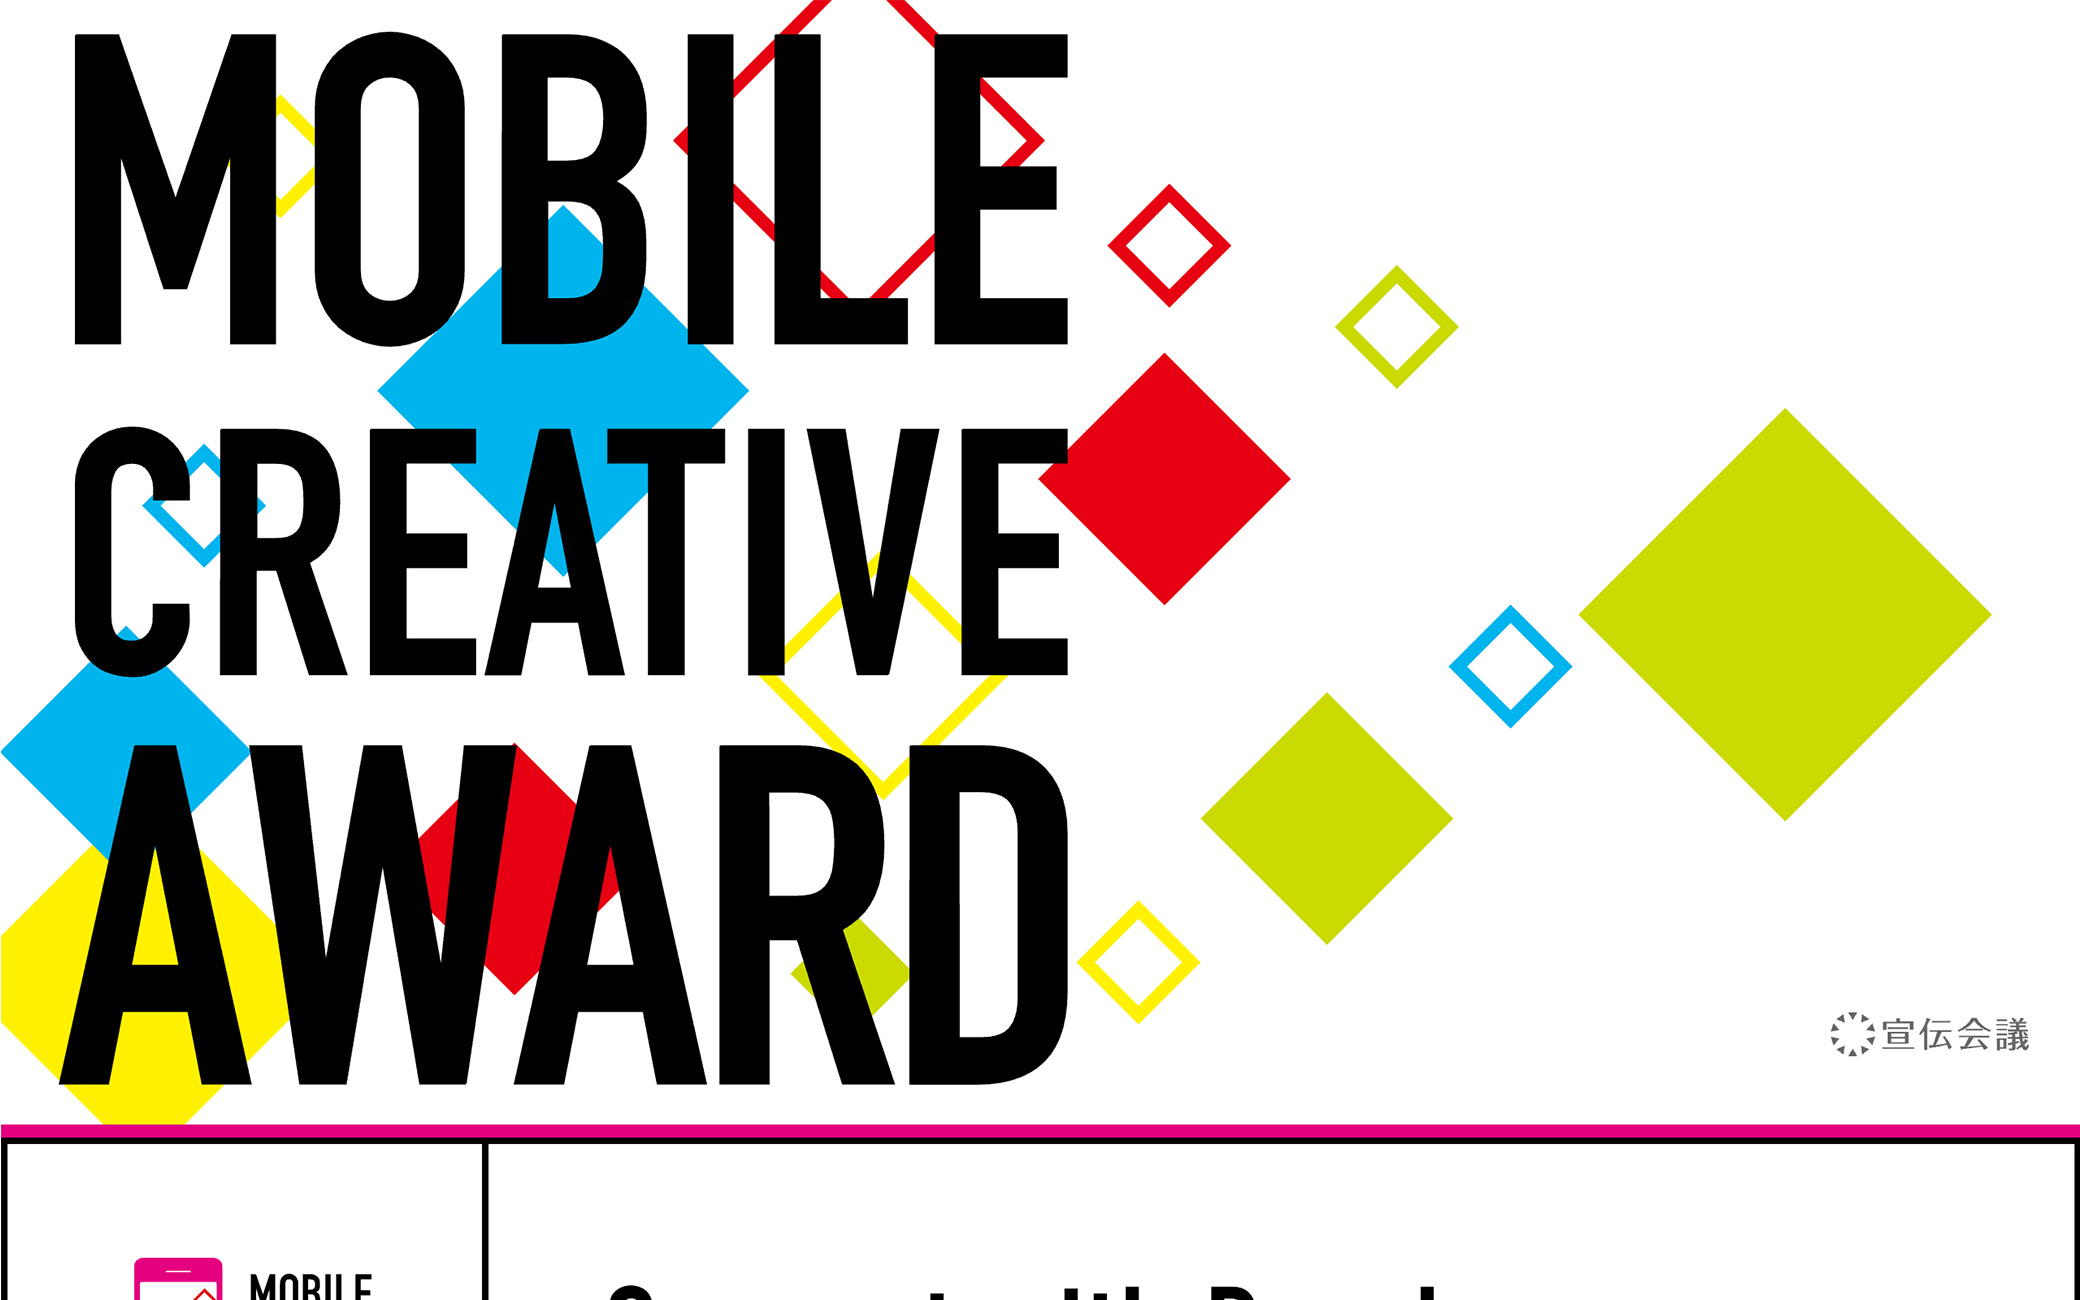 MOBILE CREATIVE AWARD